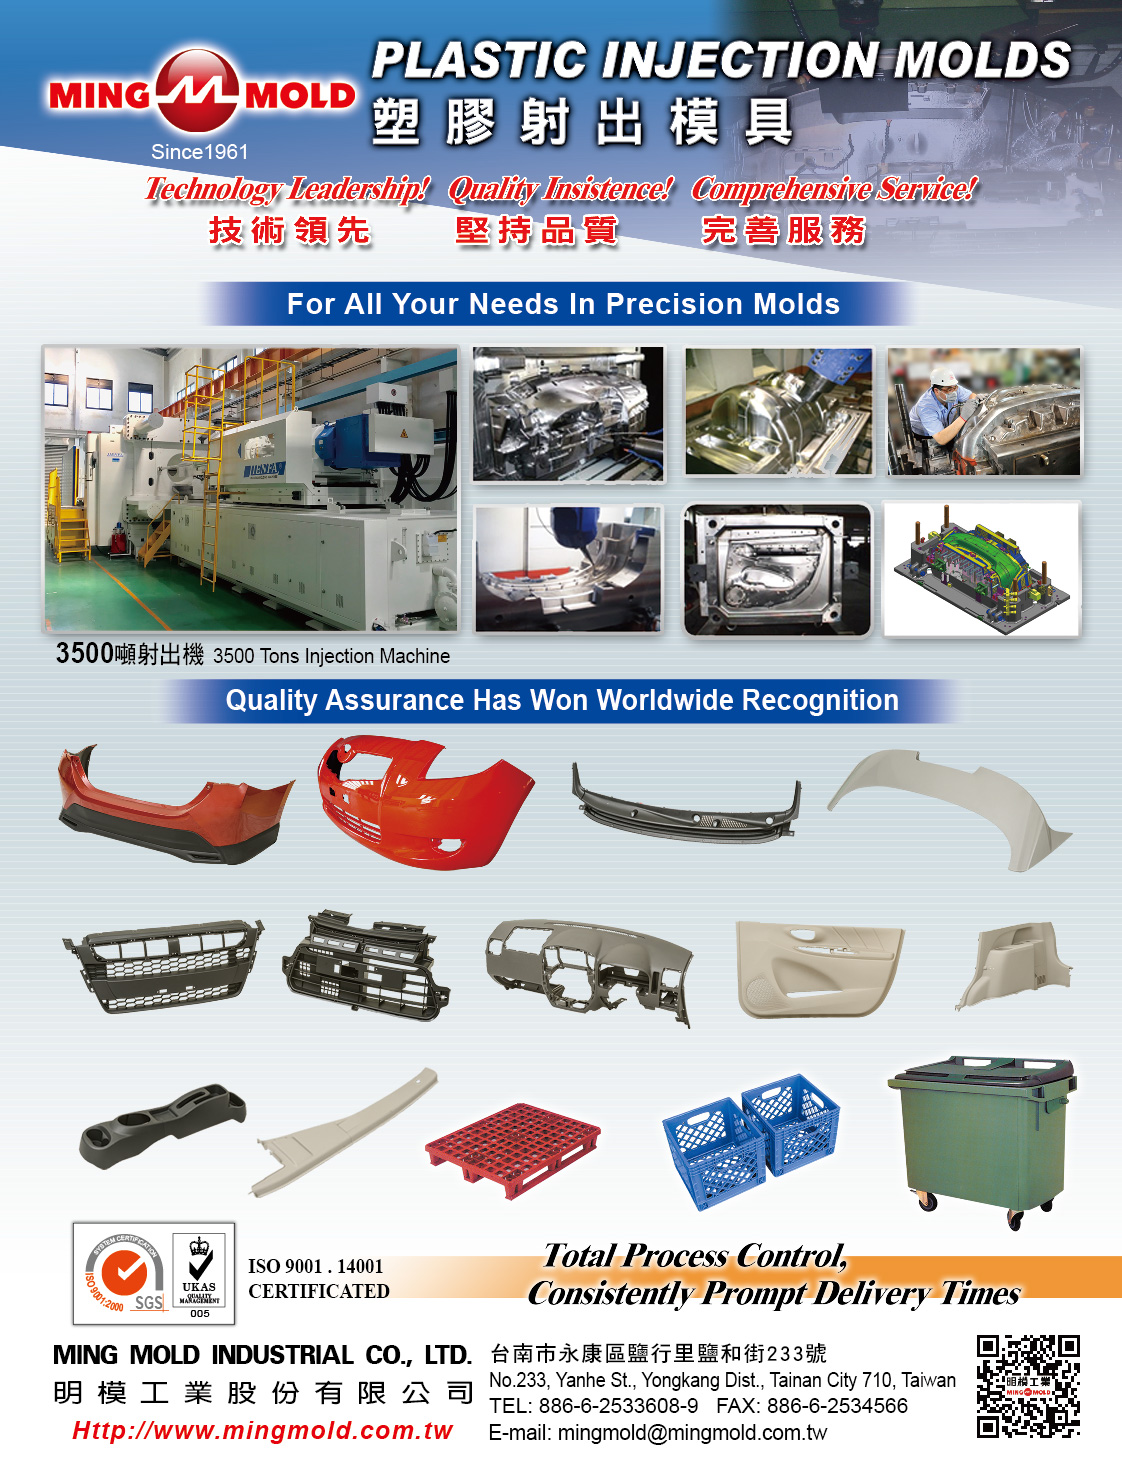 MING MOLD INDUSTRIAL CO., LTD.